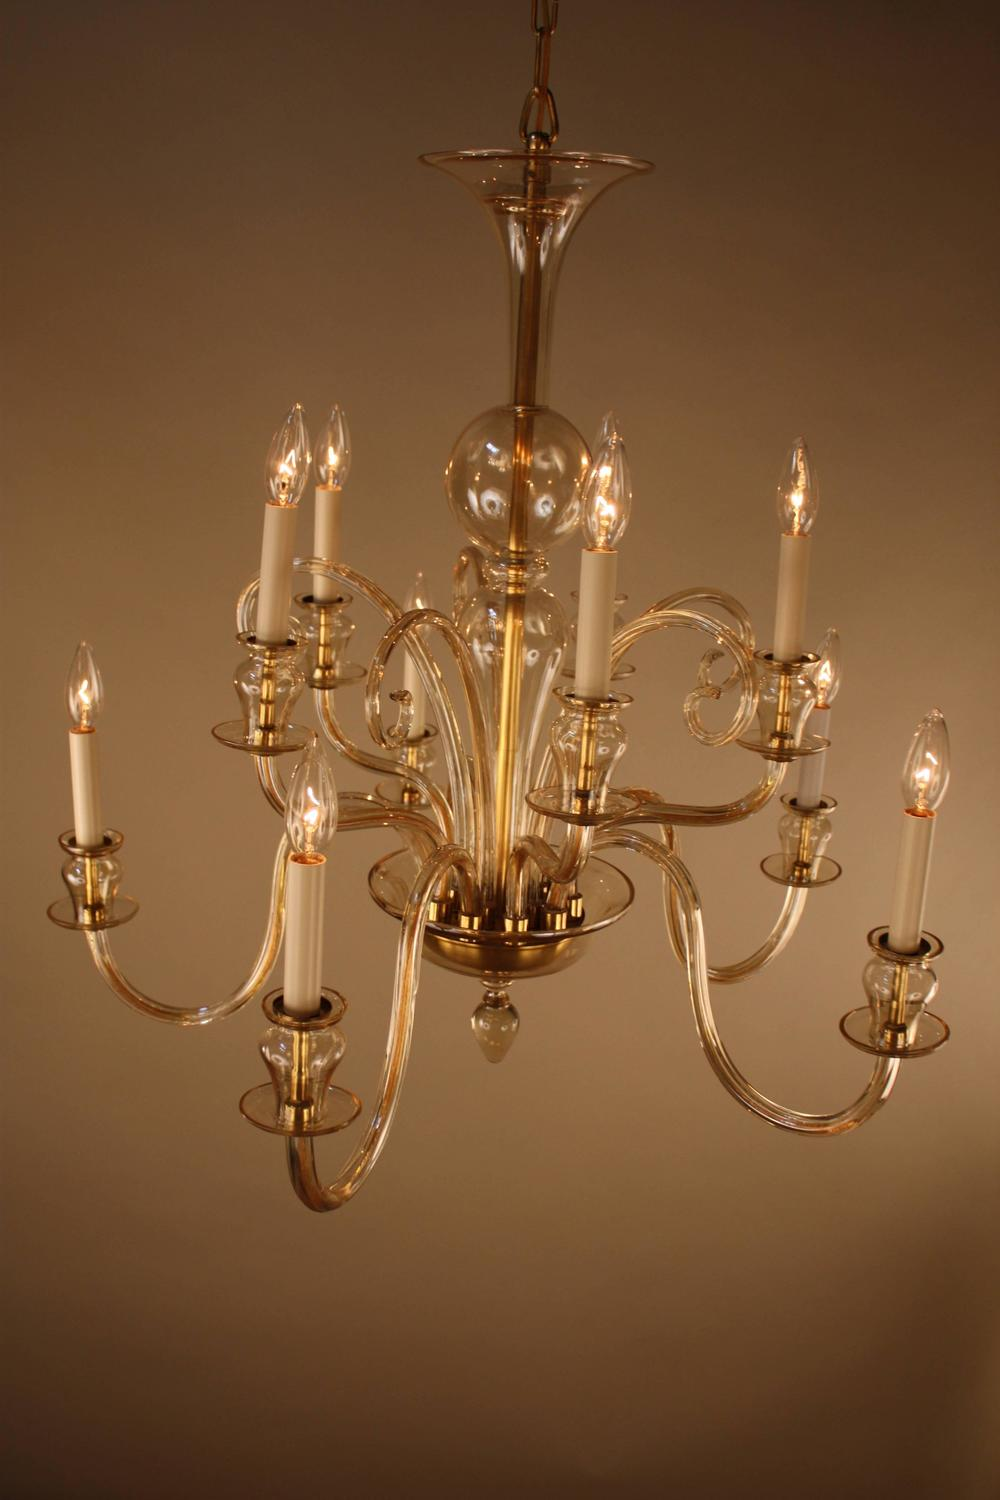 1970s modern murano glass chandelier at 1stdibs. Black Bedroom Furniture Sets. Home Design Ideas